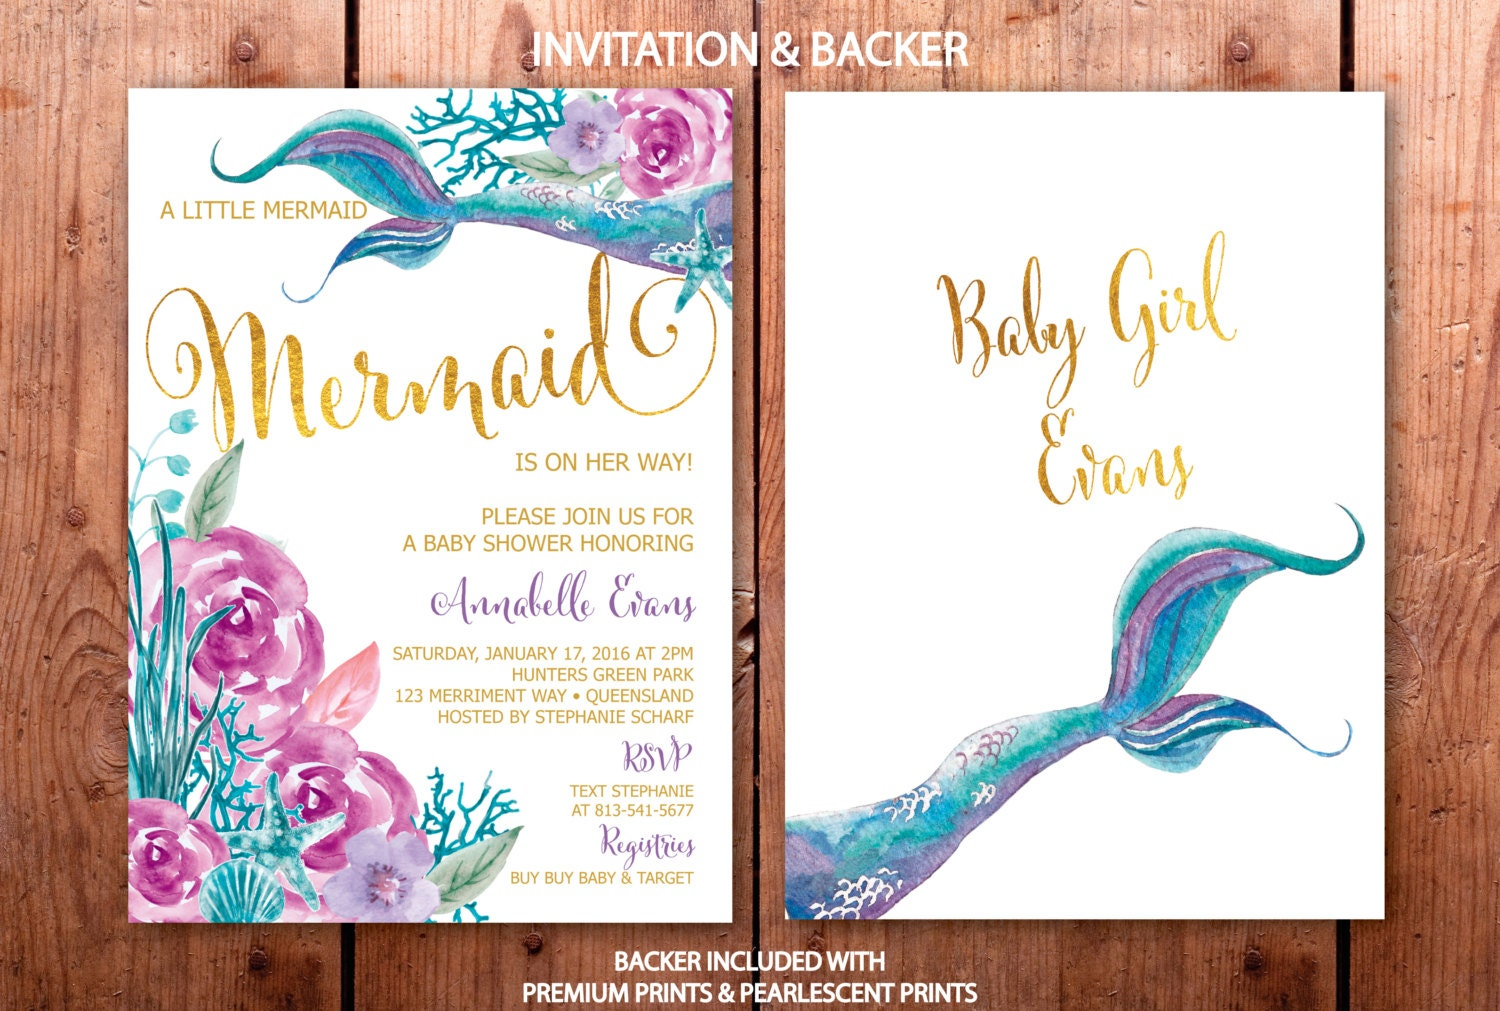 Mermaid Baby Shower Invitation, Purple And Teal Mermaid Baby Shower  Invitation, Under The Sea Invitation, Girl, Gold   QUEENSLAND COLLECTION